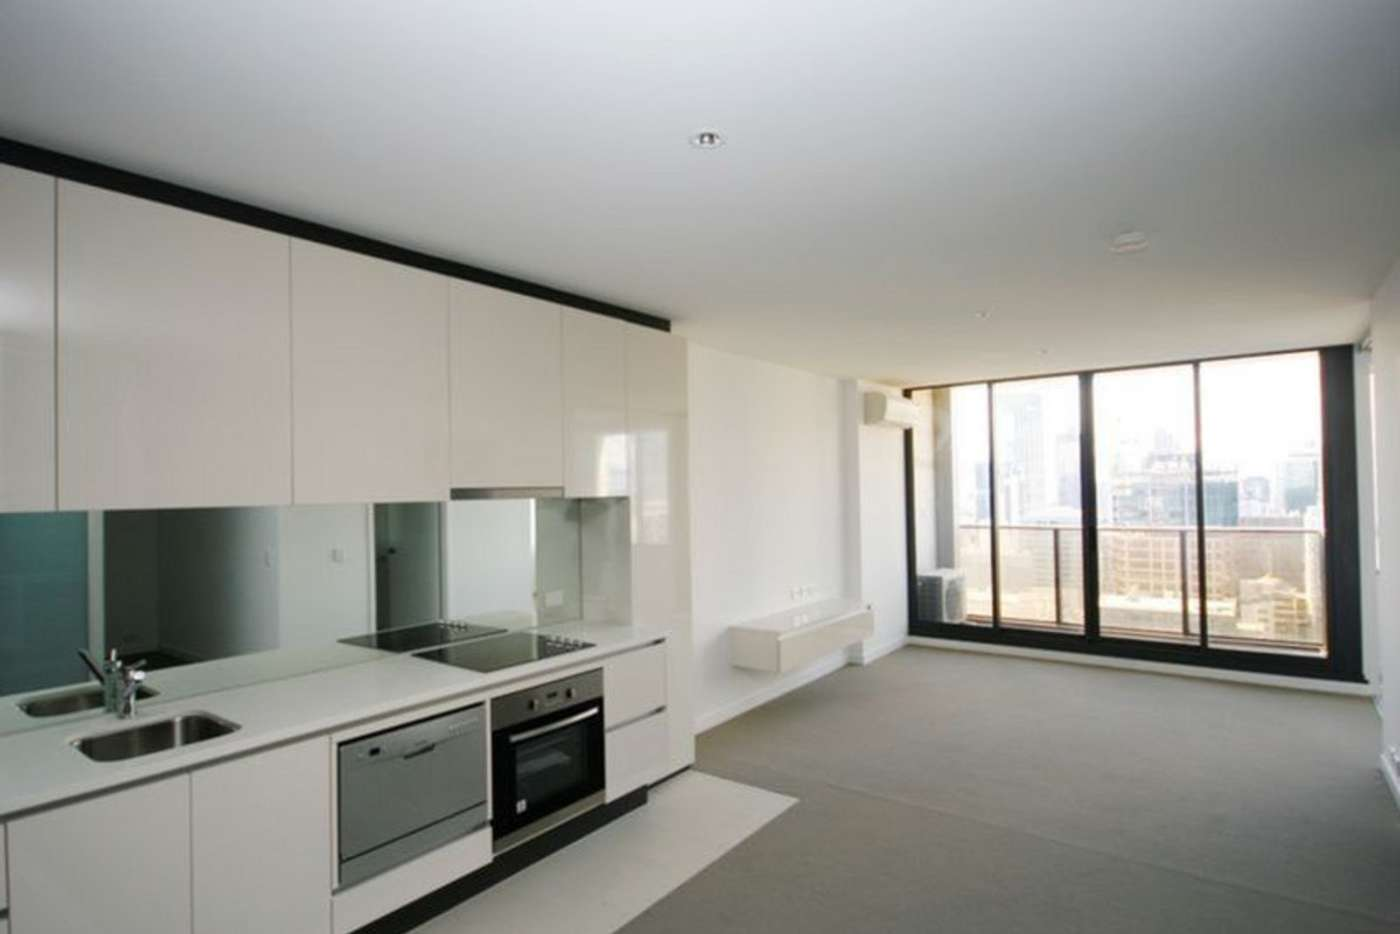 Main view of Homely apartment listing, 3002/639 Lonsdale Street, Melbourne VIC 3000